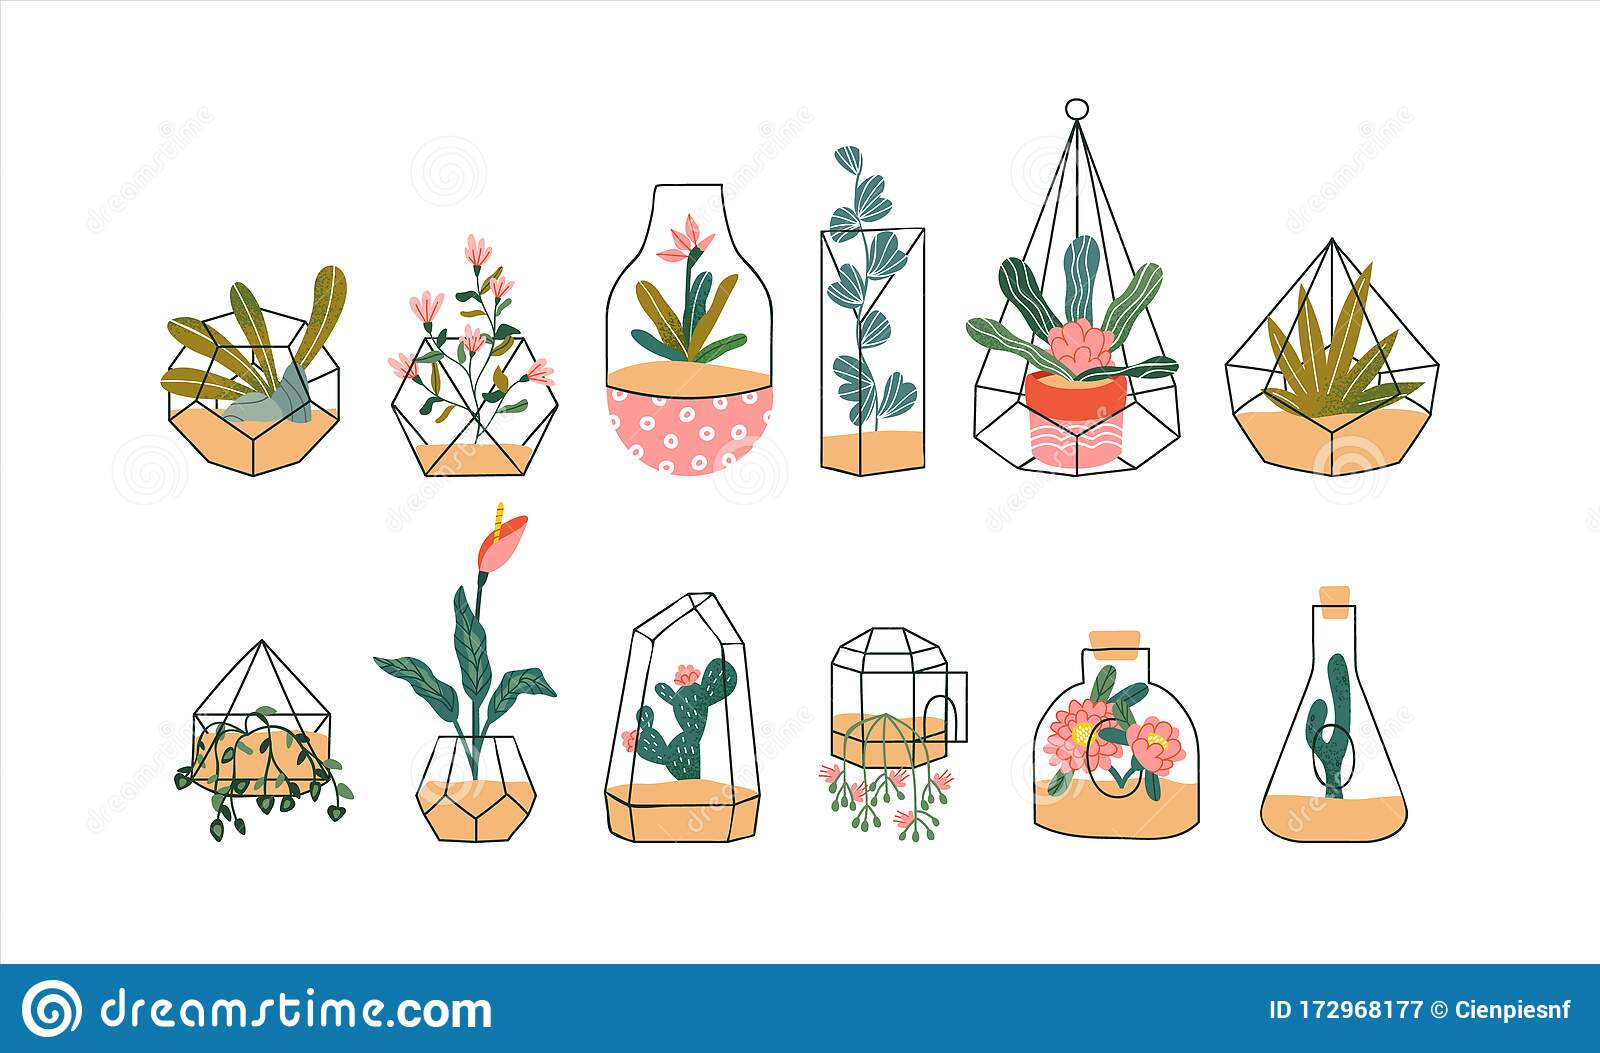 Terrarium Doodle Stock Illustrations 438 Terrarium Doodle Stock Illustrations Vectors Clipart Dreamstime